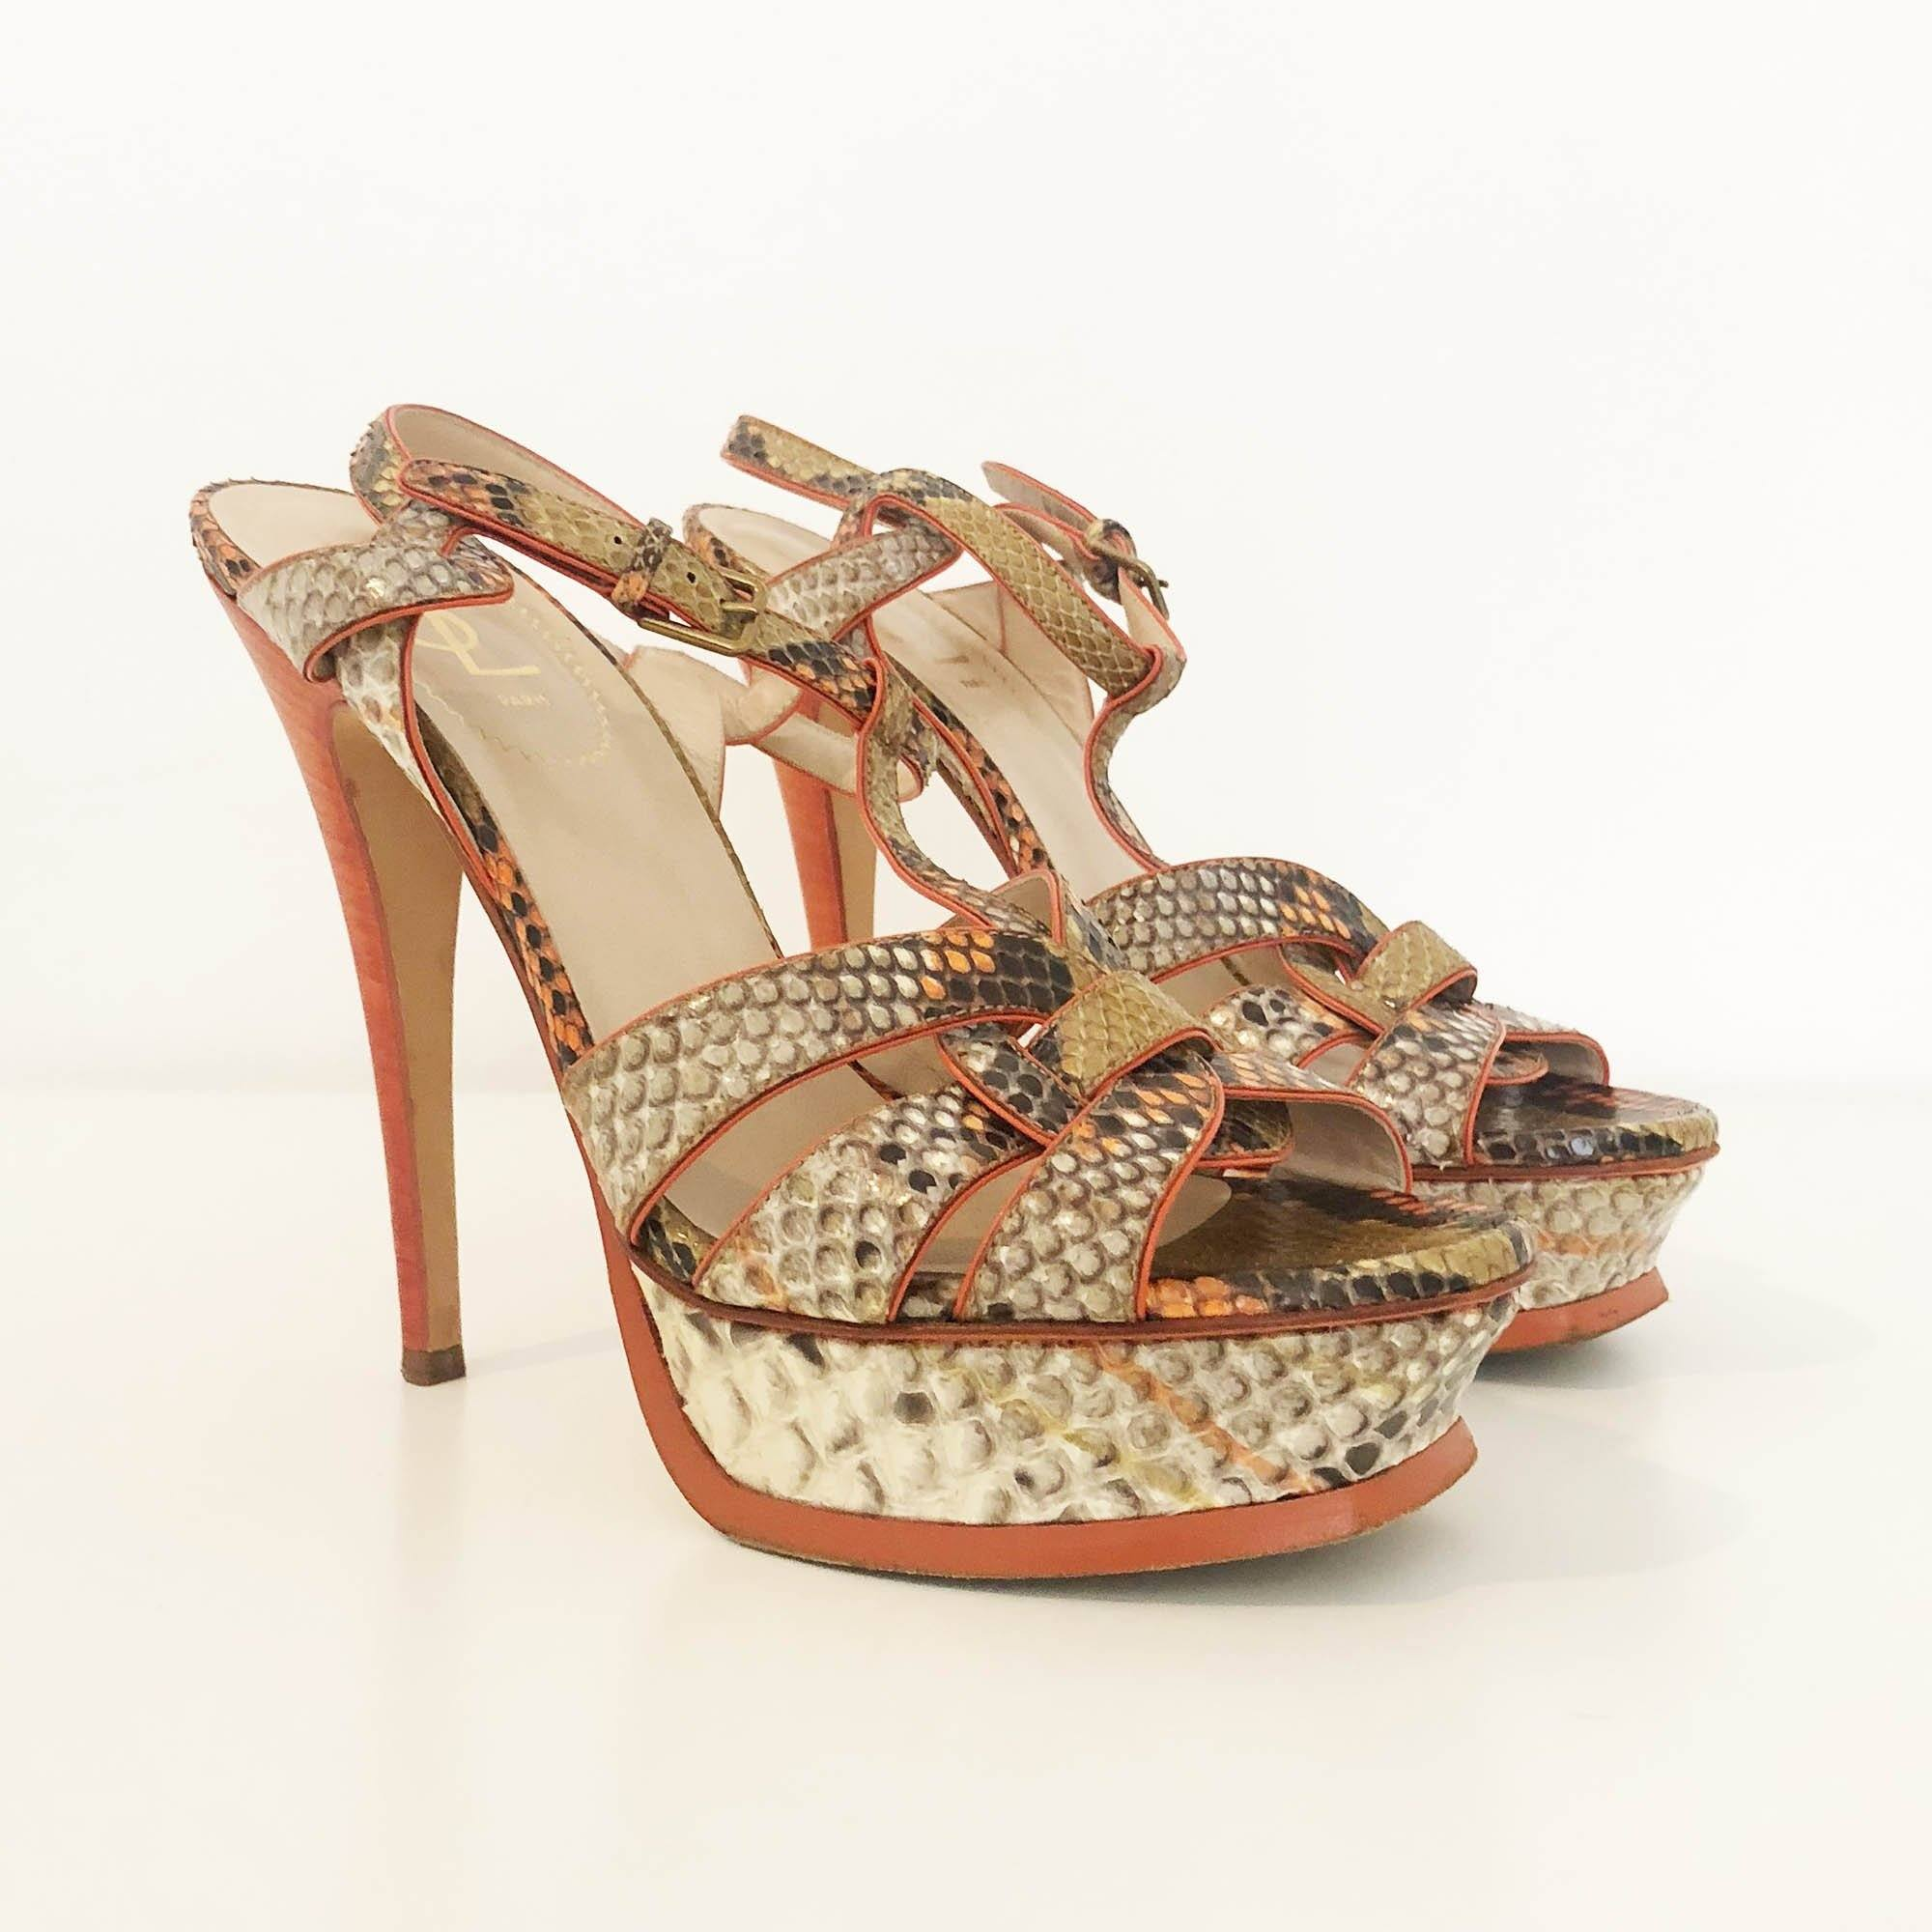 Saint Laurent Tribute Python Orange Sandal Heels